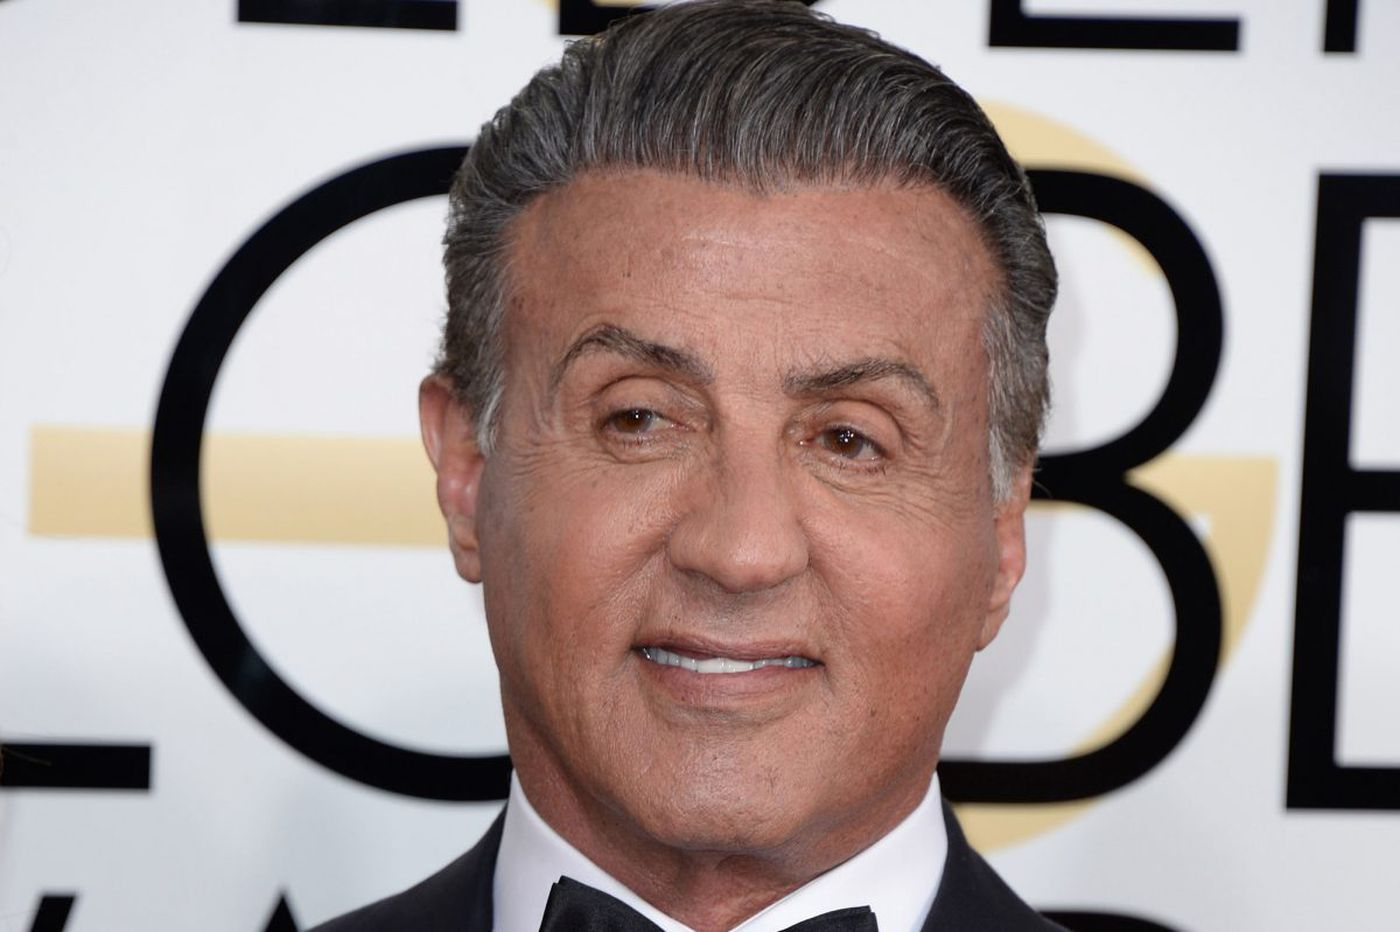 Sylvester Stallone accused of 1986 sexual assault on 16-year-old fan, denies allegations